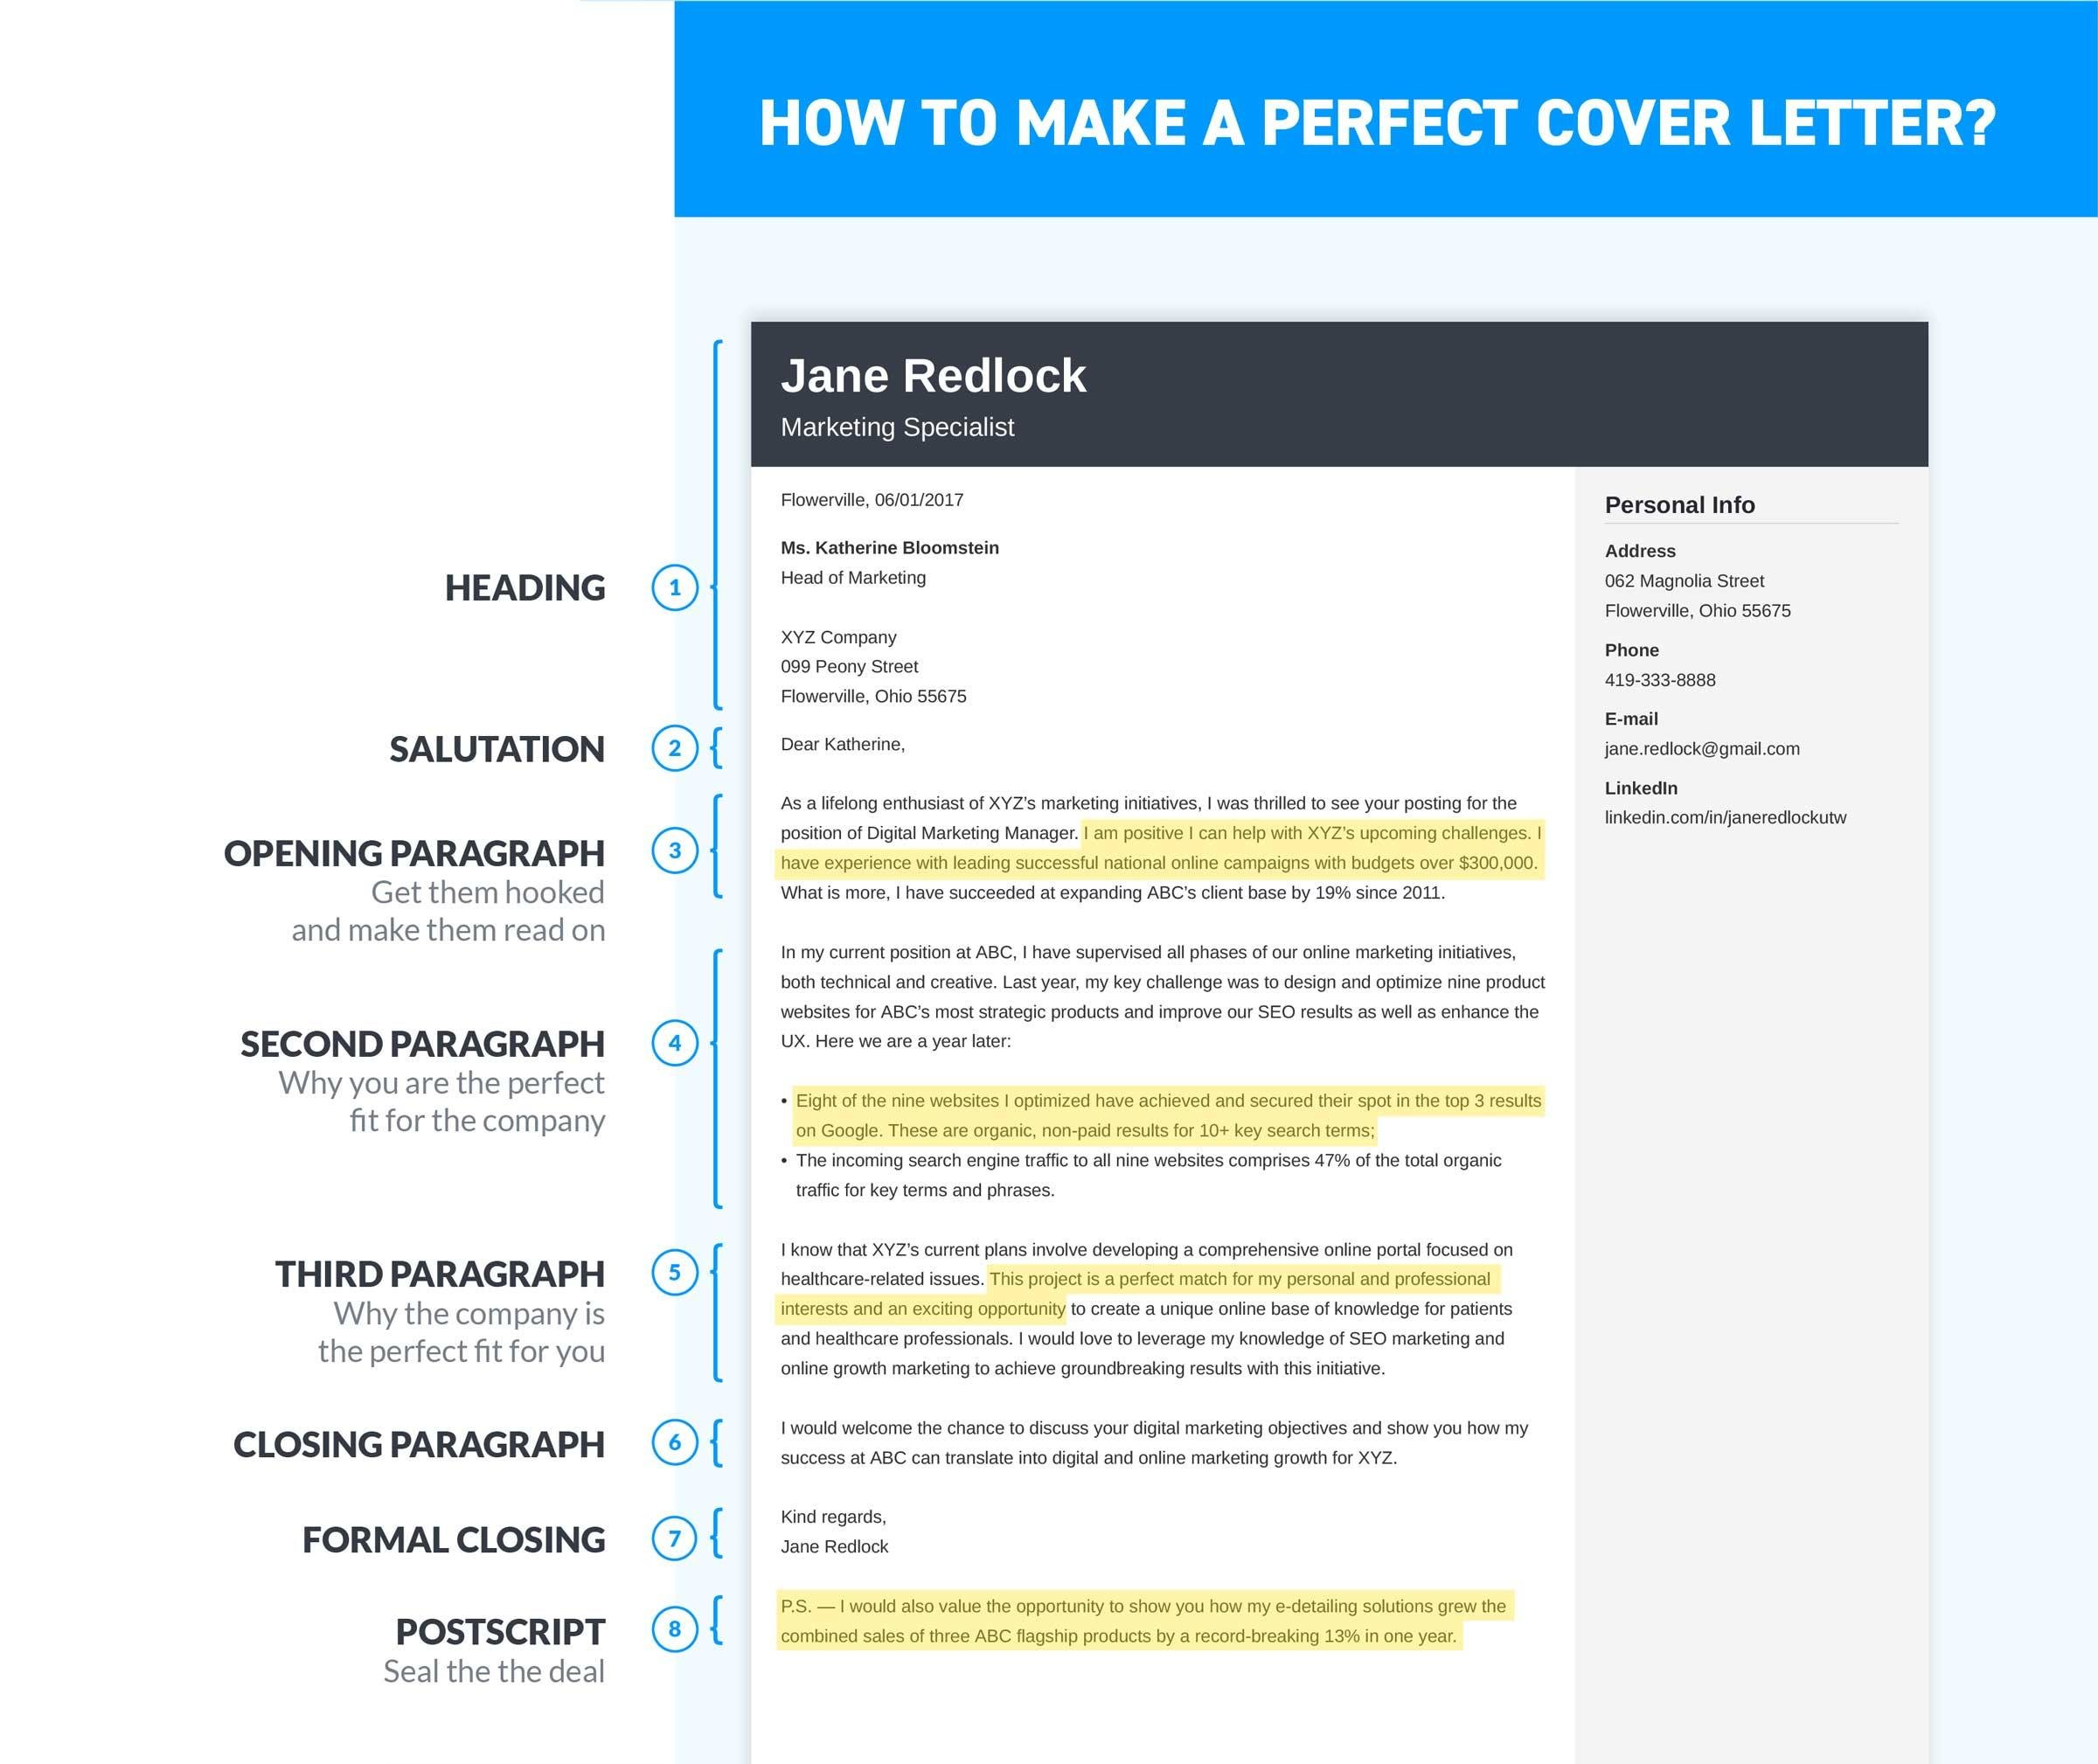 How to write a cover letter in 8 simple steps 12 examples how to make a perfect cover letter infographic altavistaventures